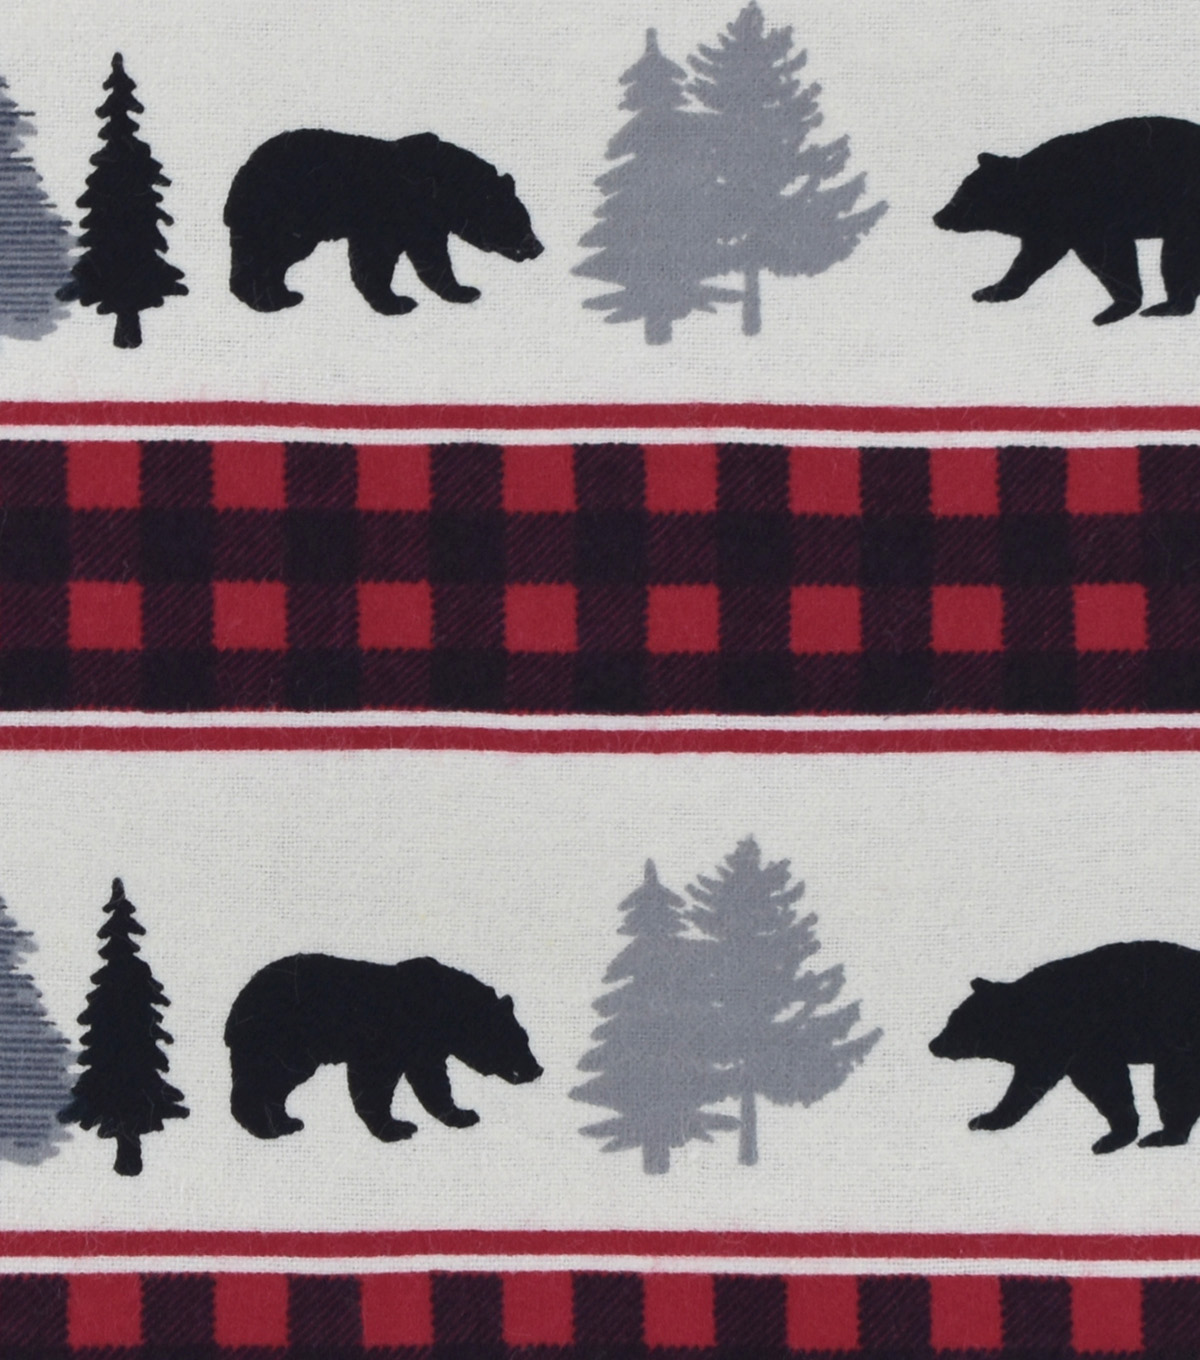 Snuggle Flannel Fabric -Black Bear Buffalo Check Stripe